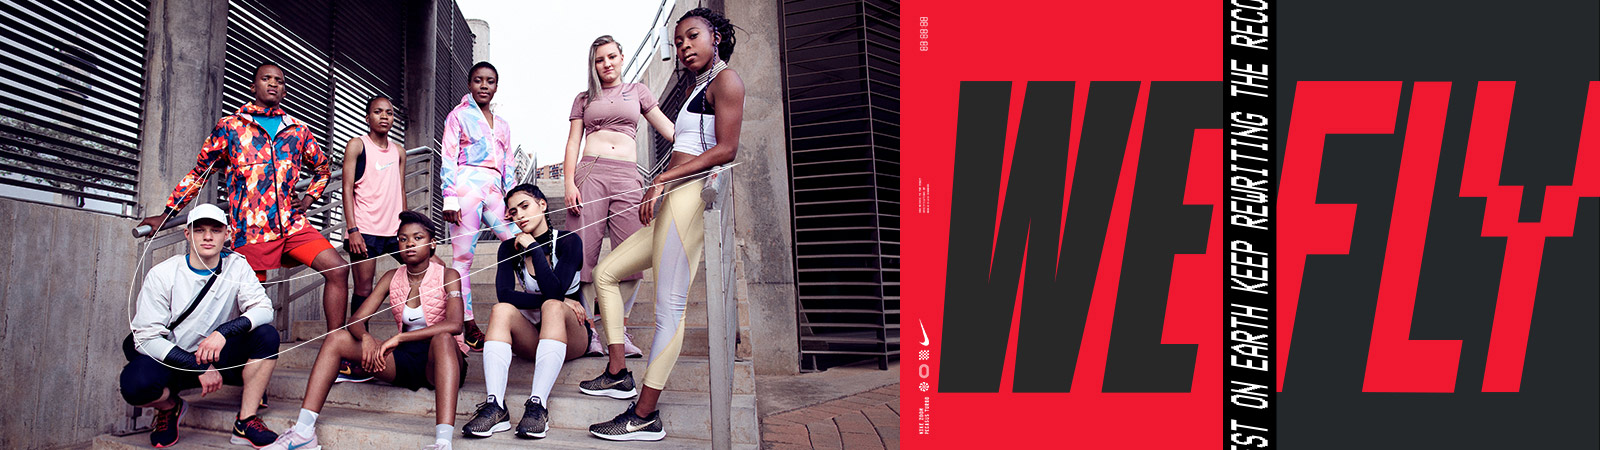 Nike banner with groupshot of athletes on left and Nike WeFly Joburg design on right